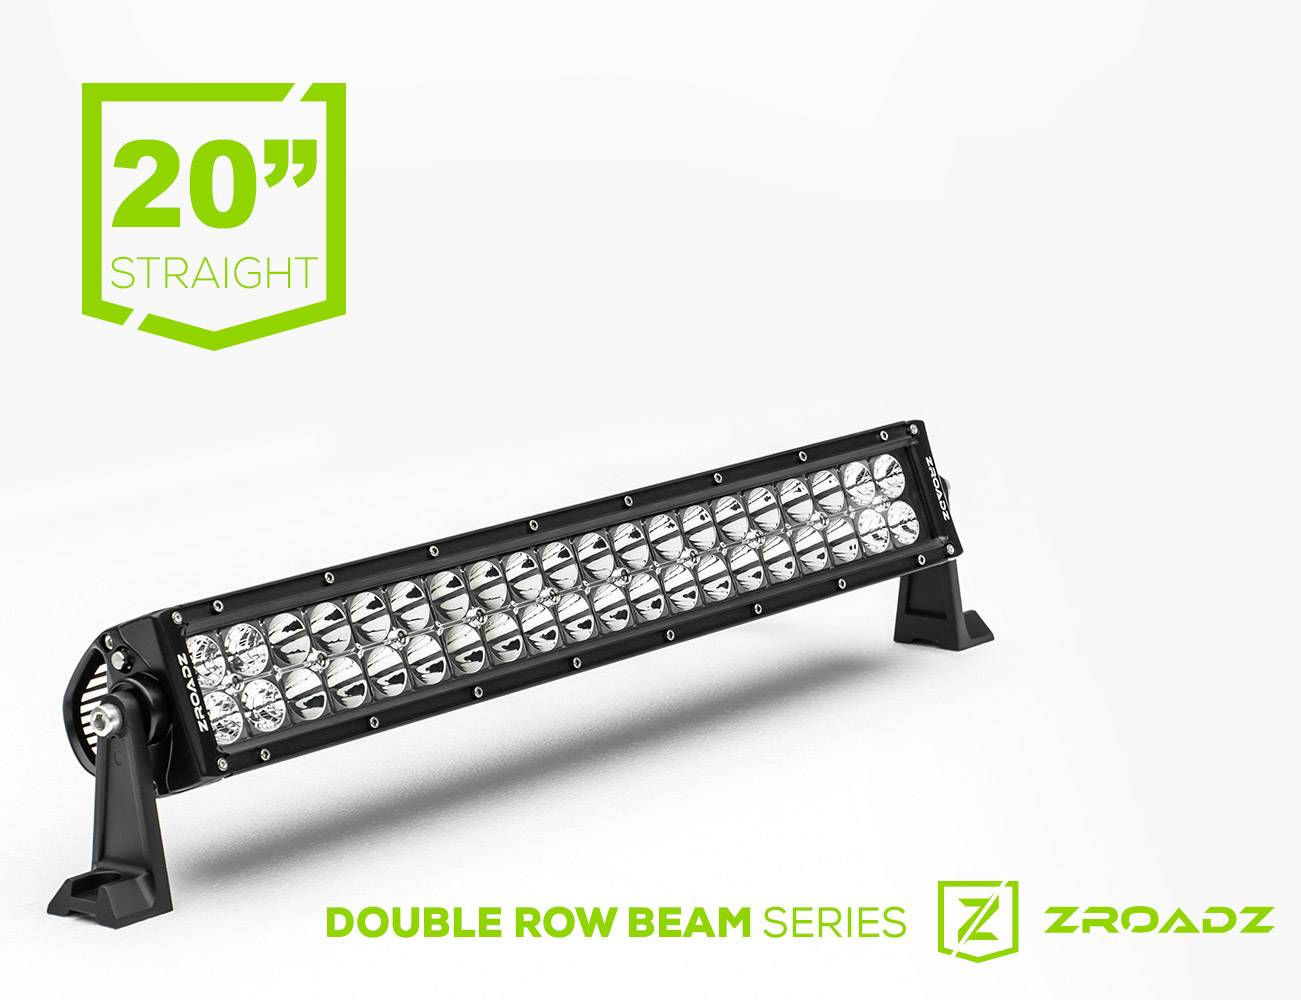 ZROADZ                                             - 20 Inch LED Straight Double Row Light Bar - PN #Z30BC14W120